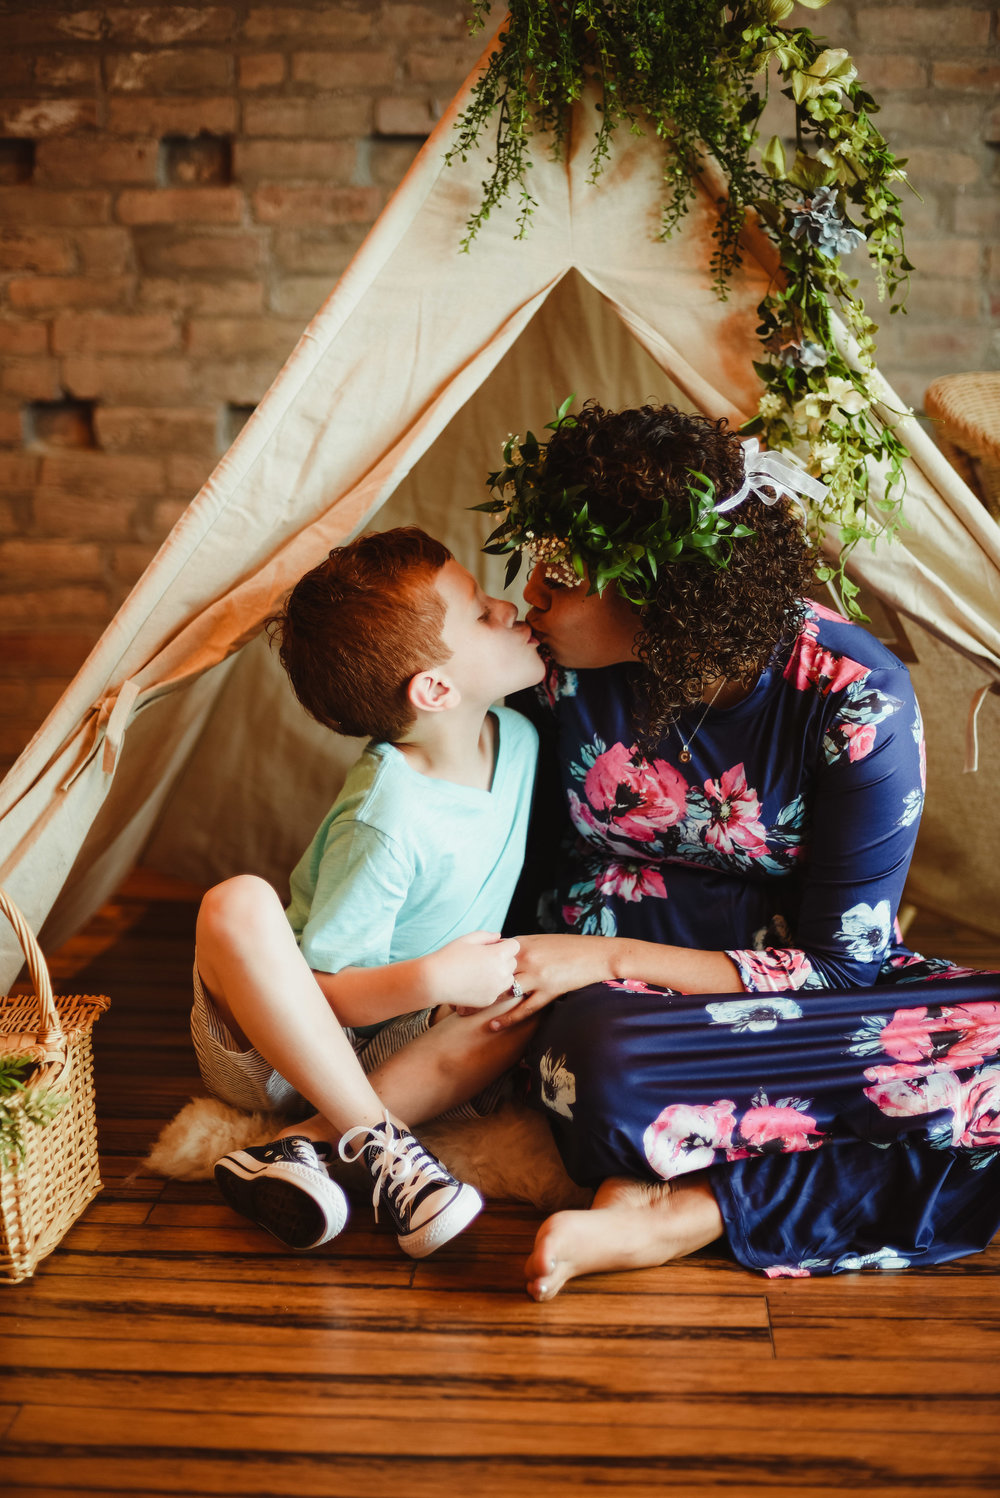 Mommy and me mothers day modern boho teepee indoor photography sessions in skaneateles syracuse auburn new york